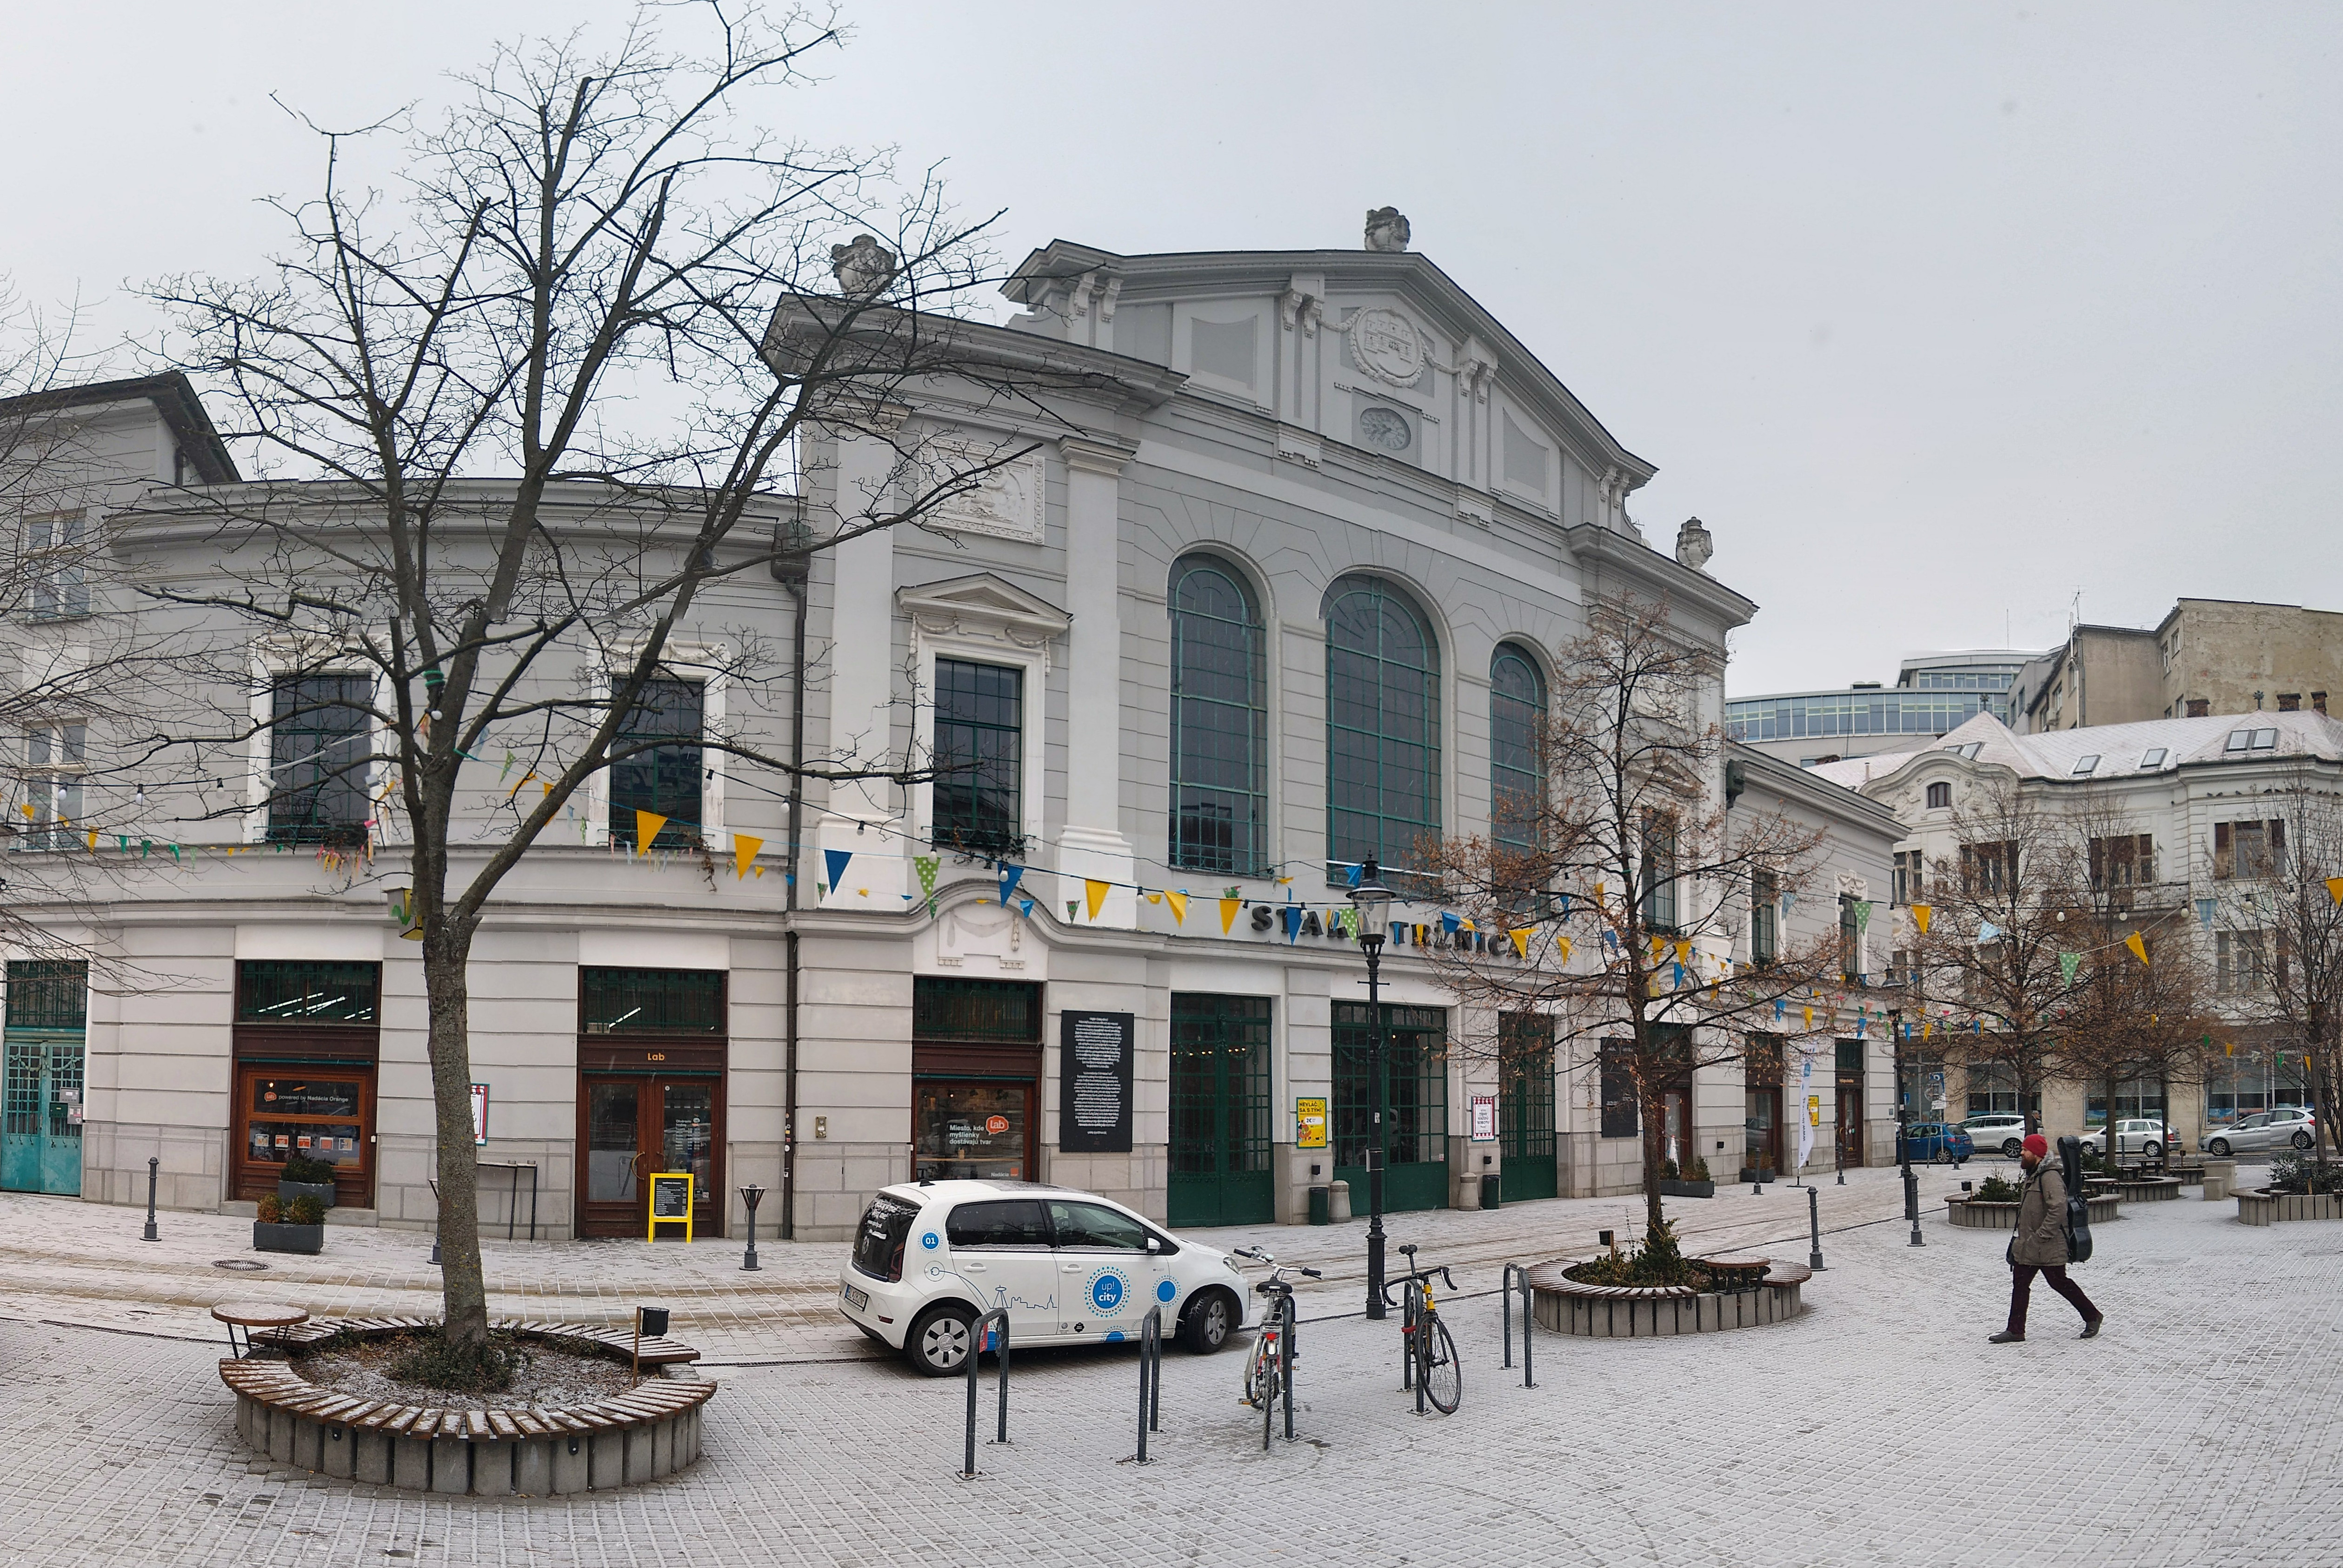 The Old Market building